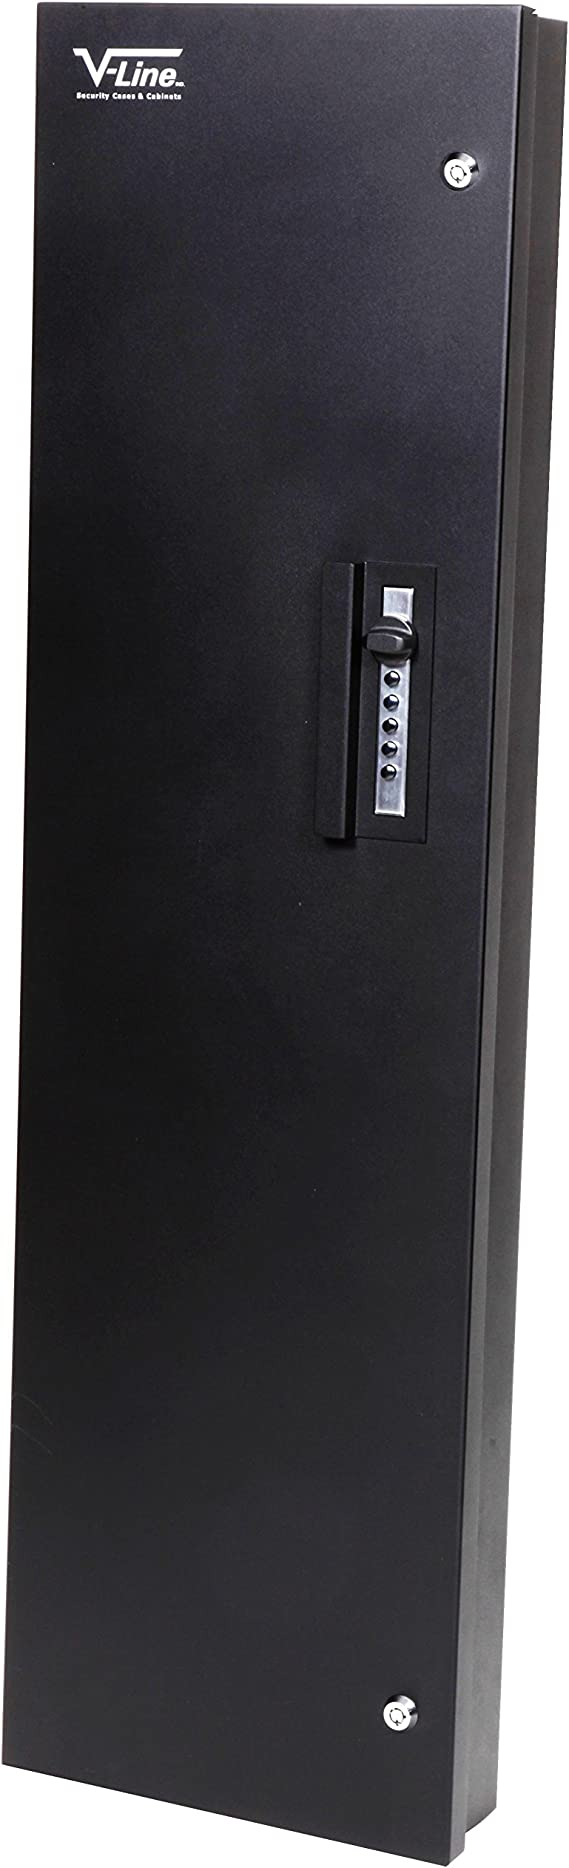 V-Line 31242-SA Quick Access Keyless Long Gun Safe (Black